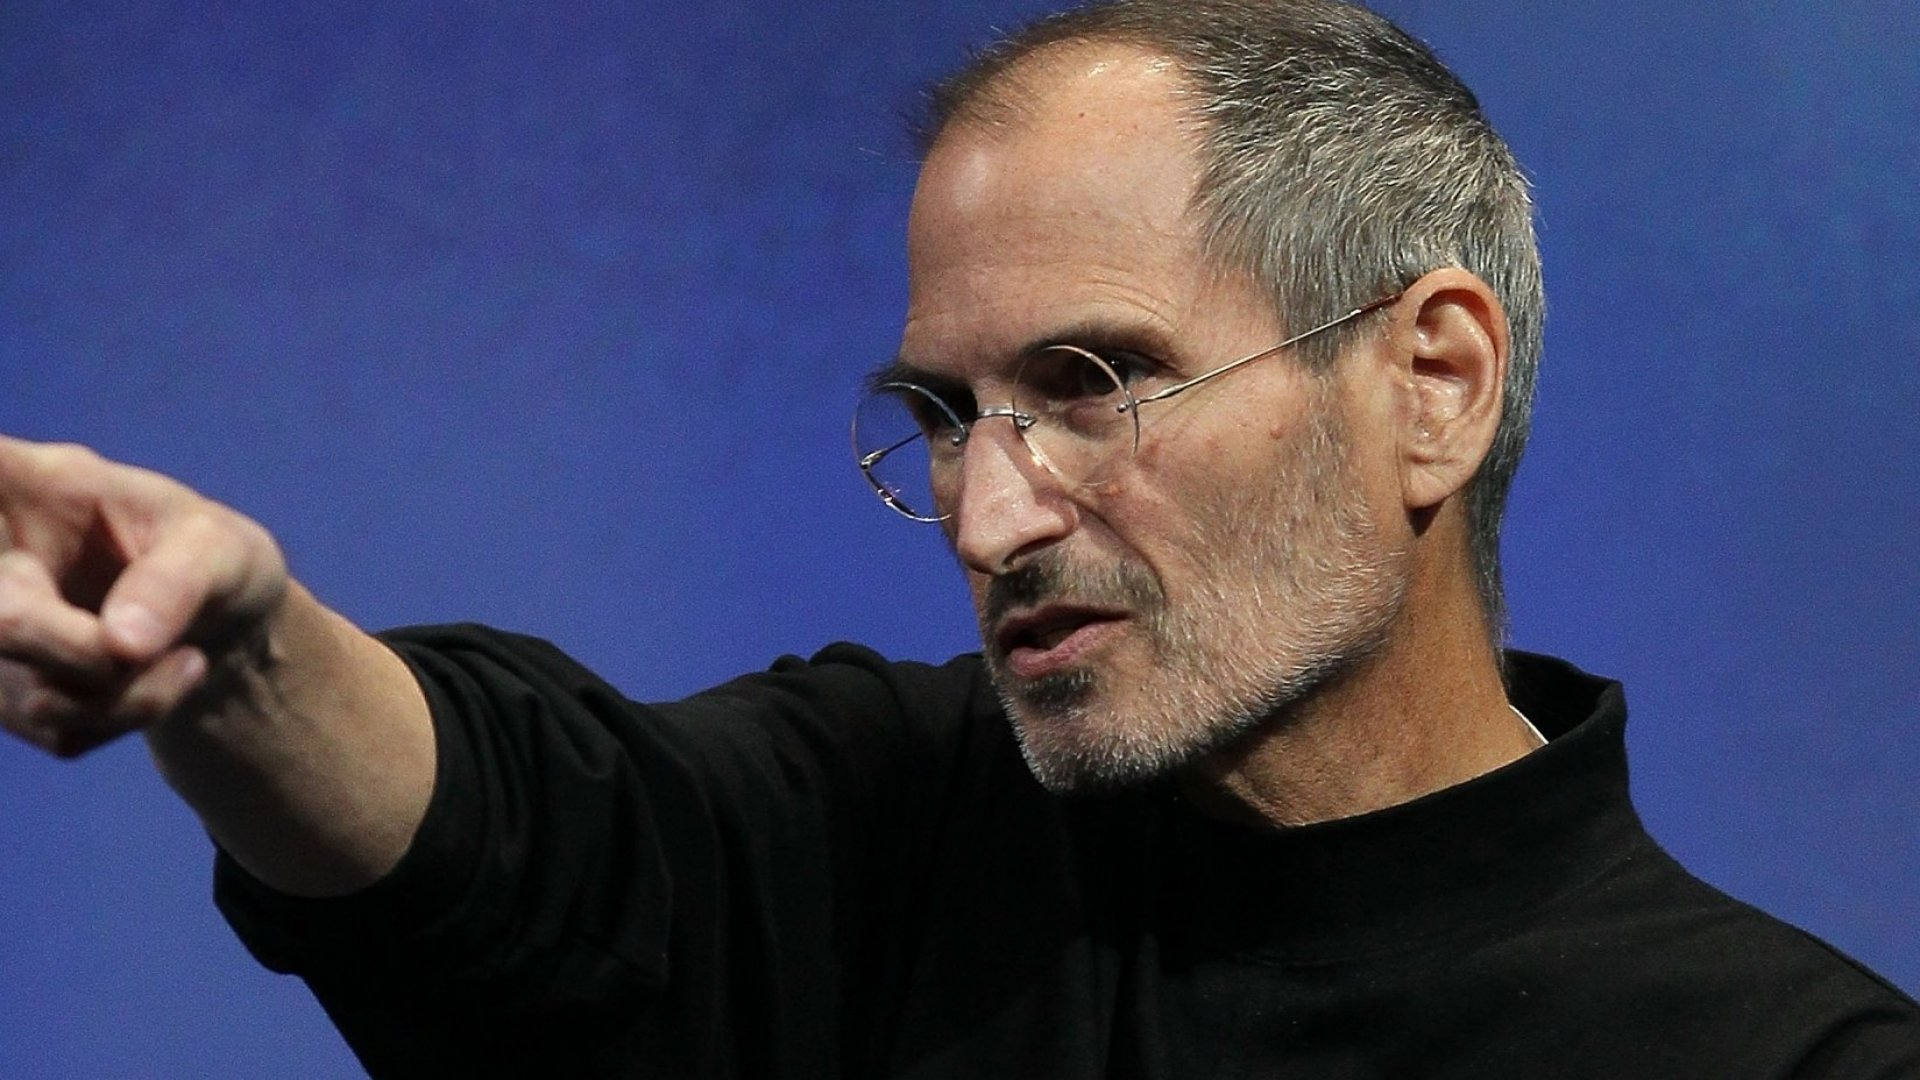 This Famous Silicon Valley Venture Capitalist Proved Himself to Steve Jobs by Doing One Very Surprising Thing